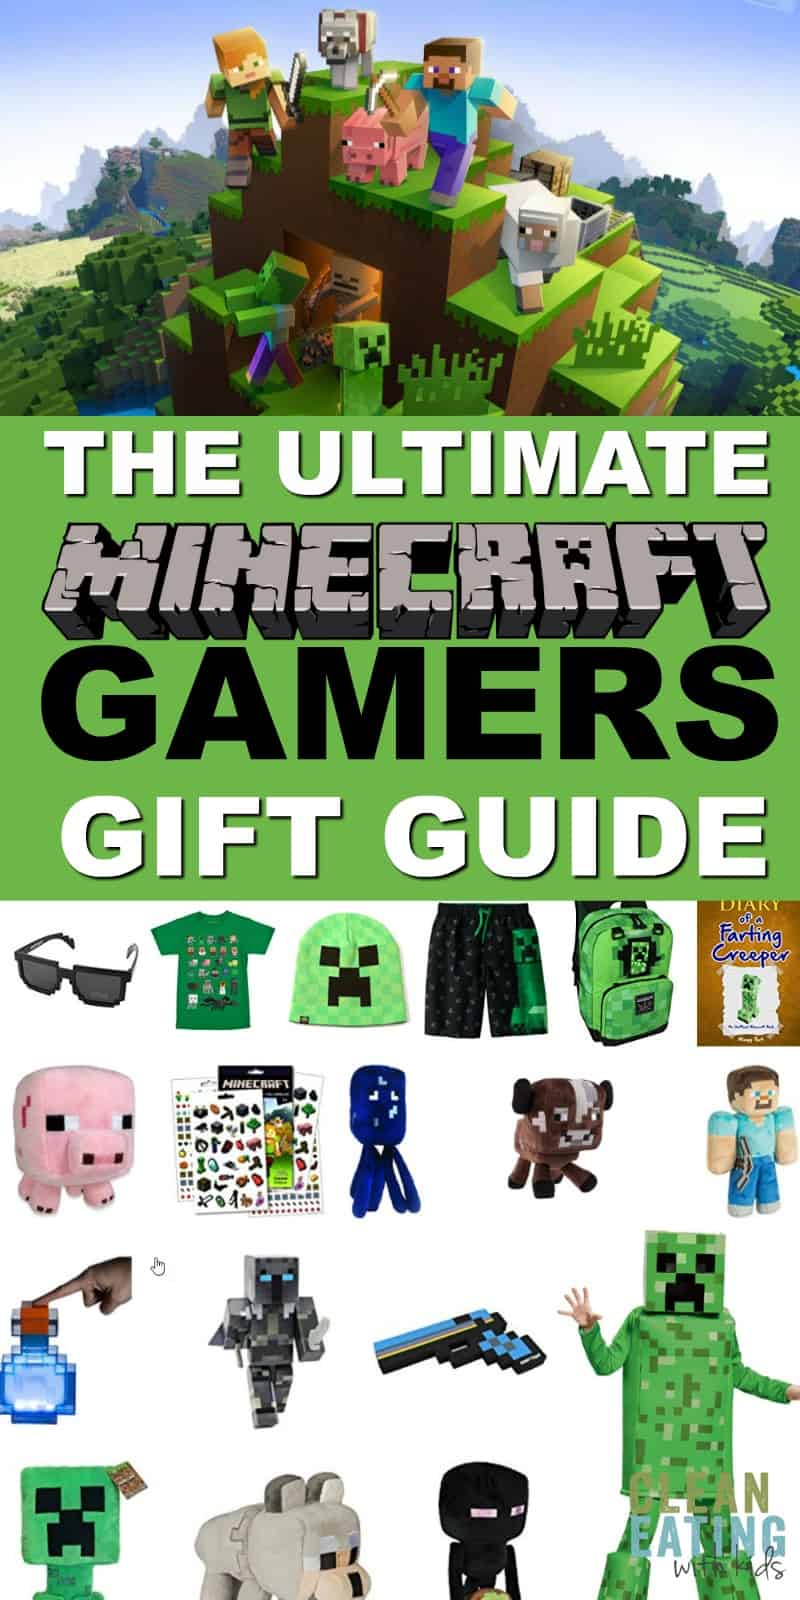 Here it is! The Ultimate Minecraft Gamers Gift Guide